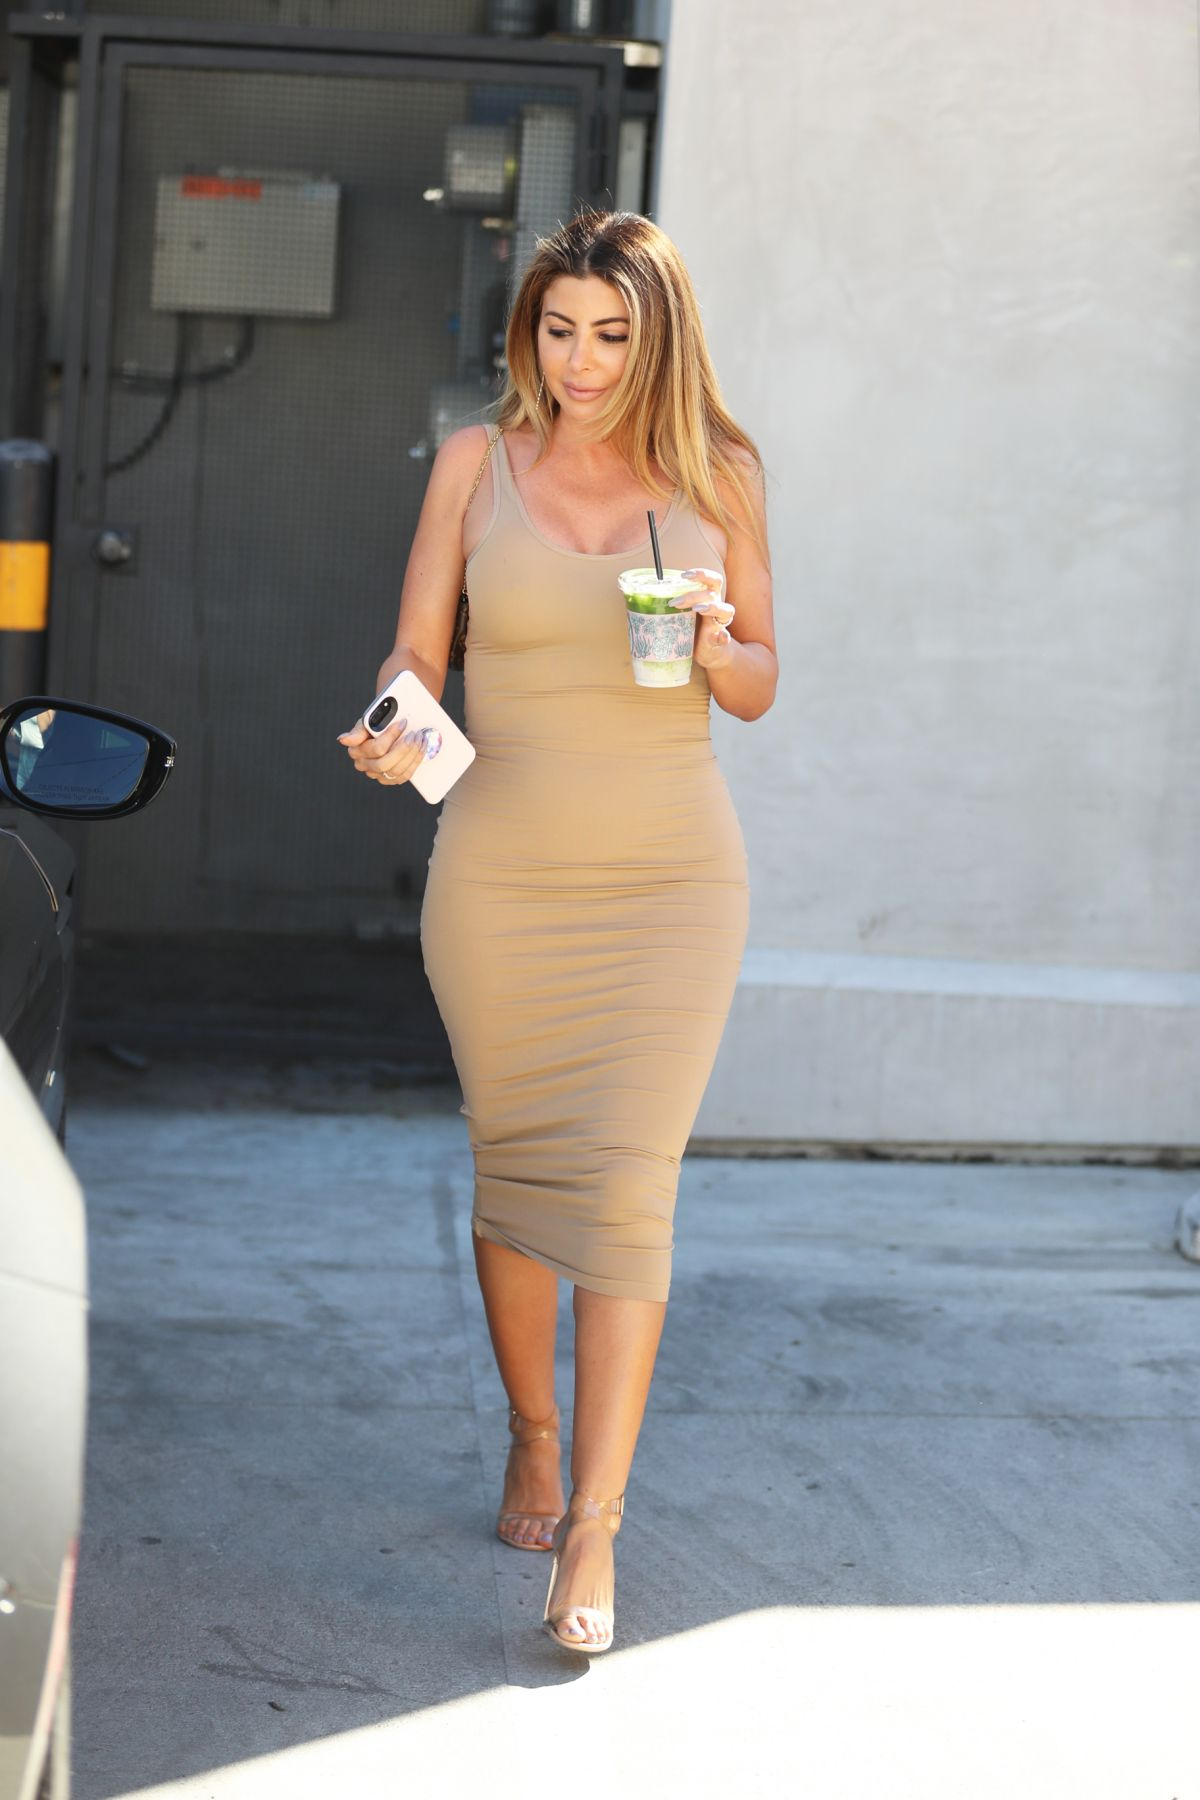 Kourtney kardashian and larsa pippen alfred tea room on melrose place in west hollywood new images